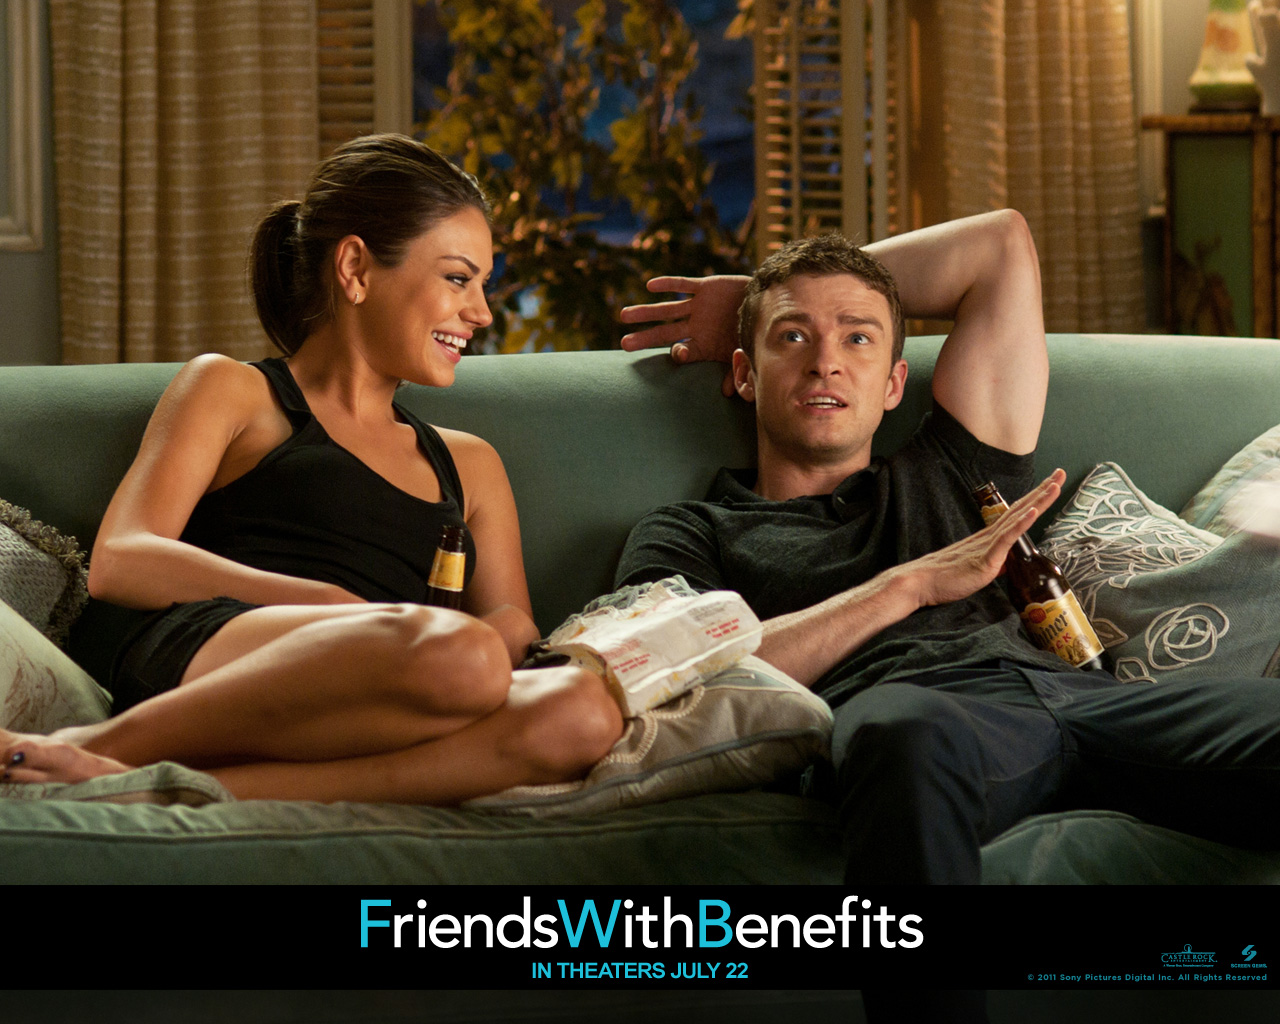 http://4.bp.blogspot.com/-0AE2s-dgCC8/TjQ-64piAqI/AAAAAAAAB8E/4T9f8895kD8/s1600/Justin_Timberlake_in_Friends_with_Benefits_Wallpaper_3_1024.jpg